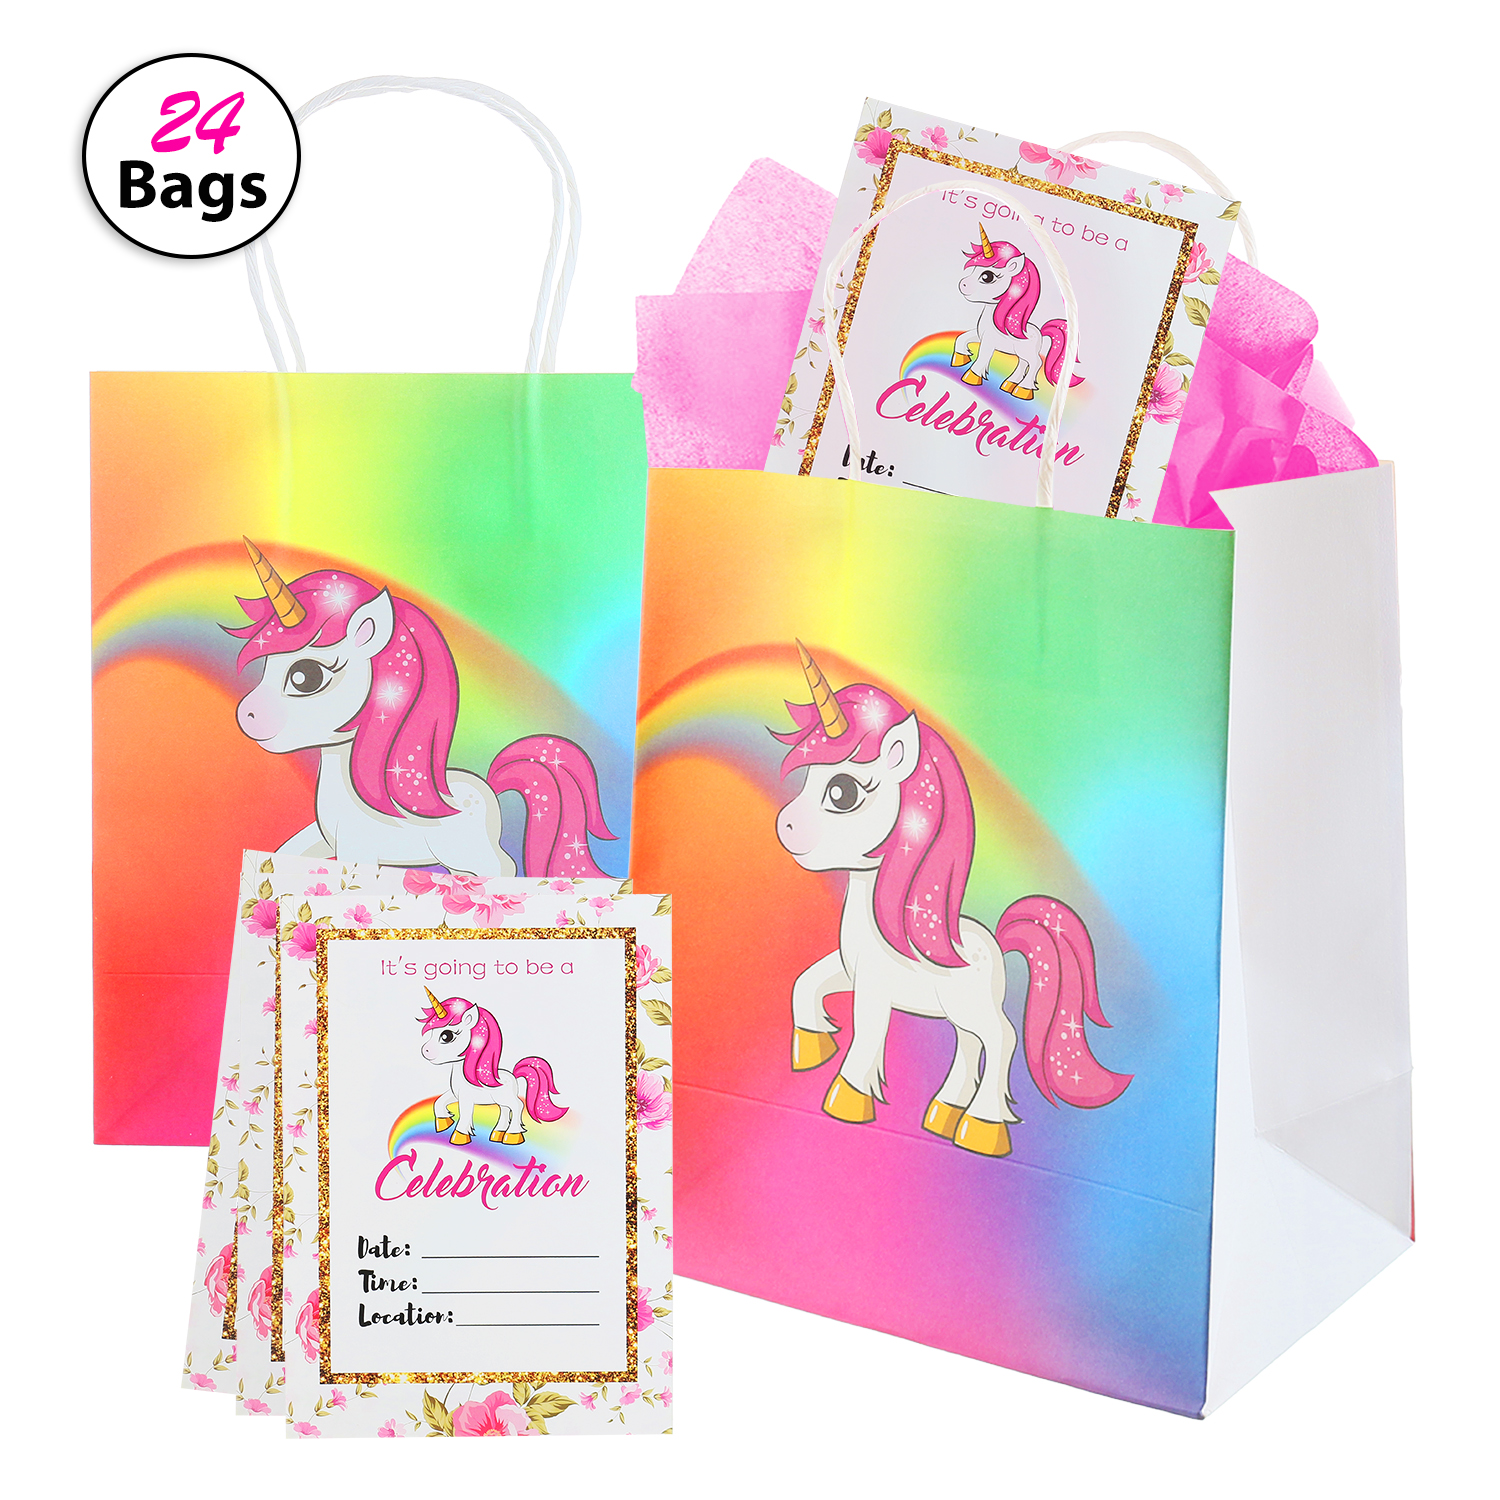 Set of Unicorn Paper Gift Bags and Birthday Party Invitations | Party Decorations and Supplies for Girls | Includes 24 Unicorn Party Favor Bags + 24 Invite Cards | Extra Durable Paper Materials